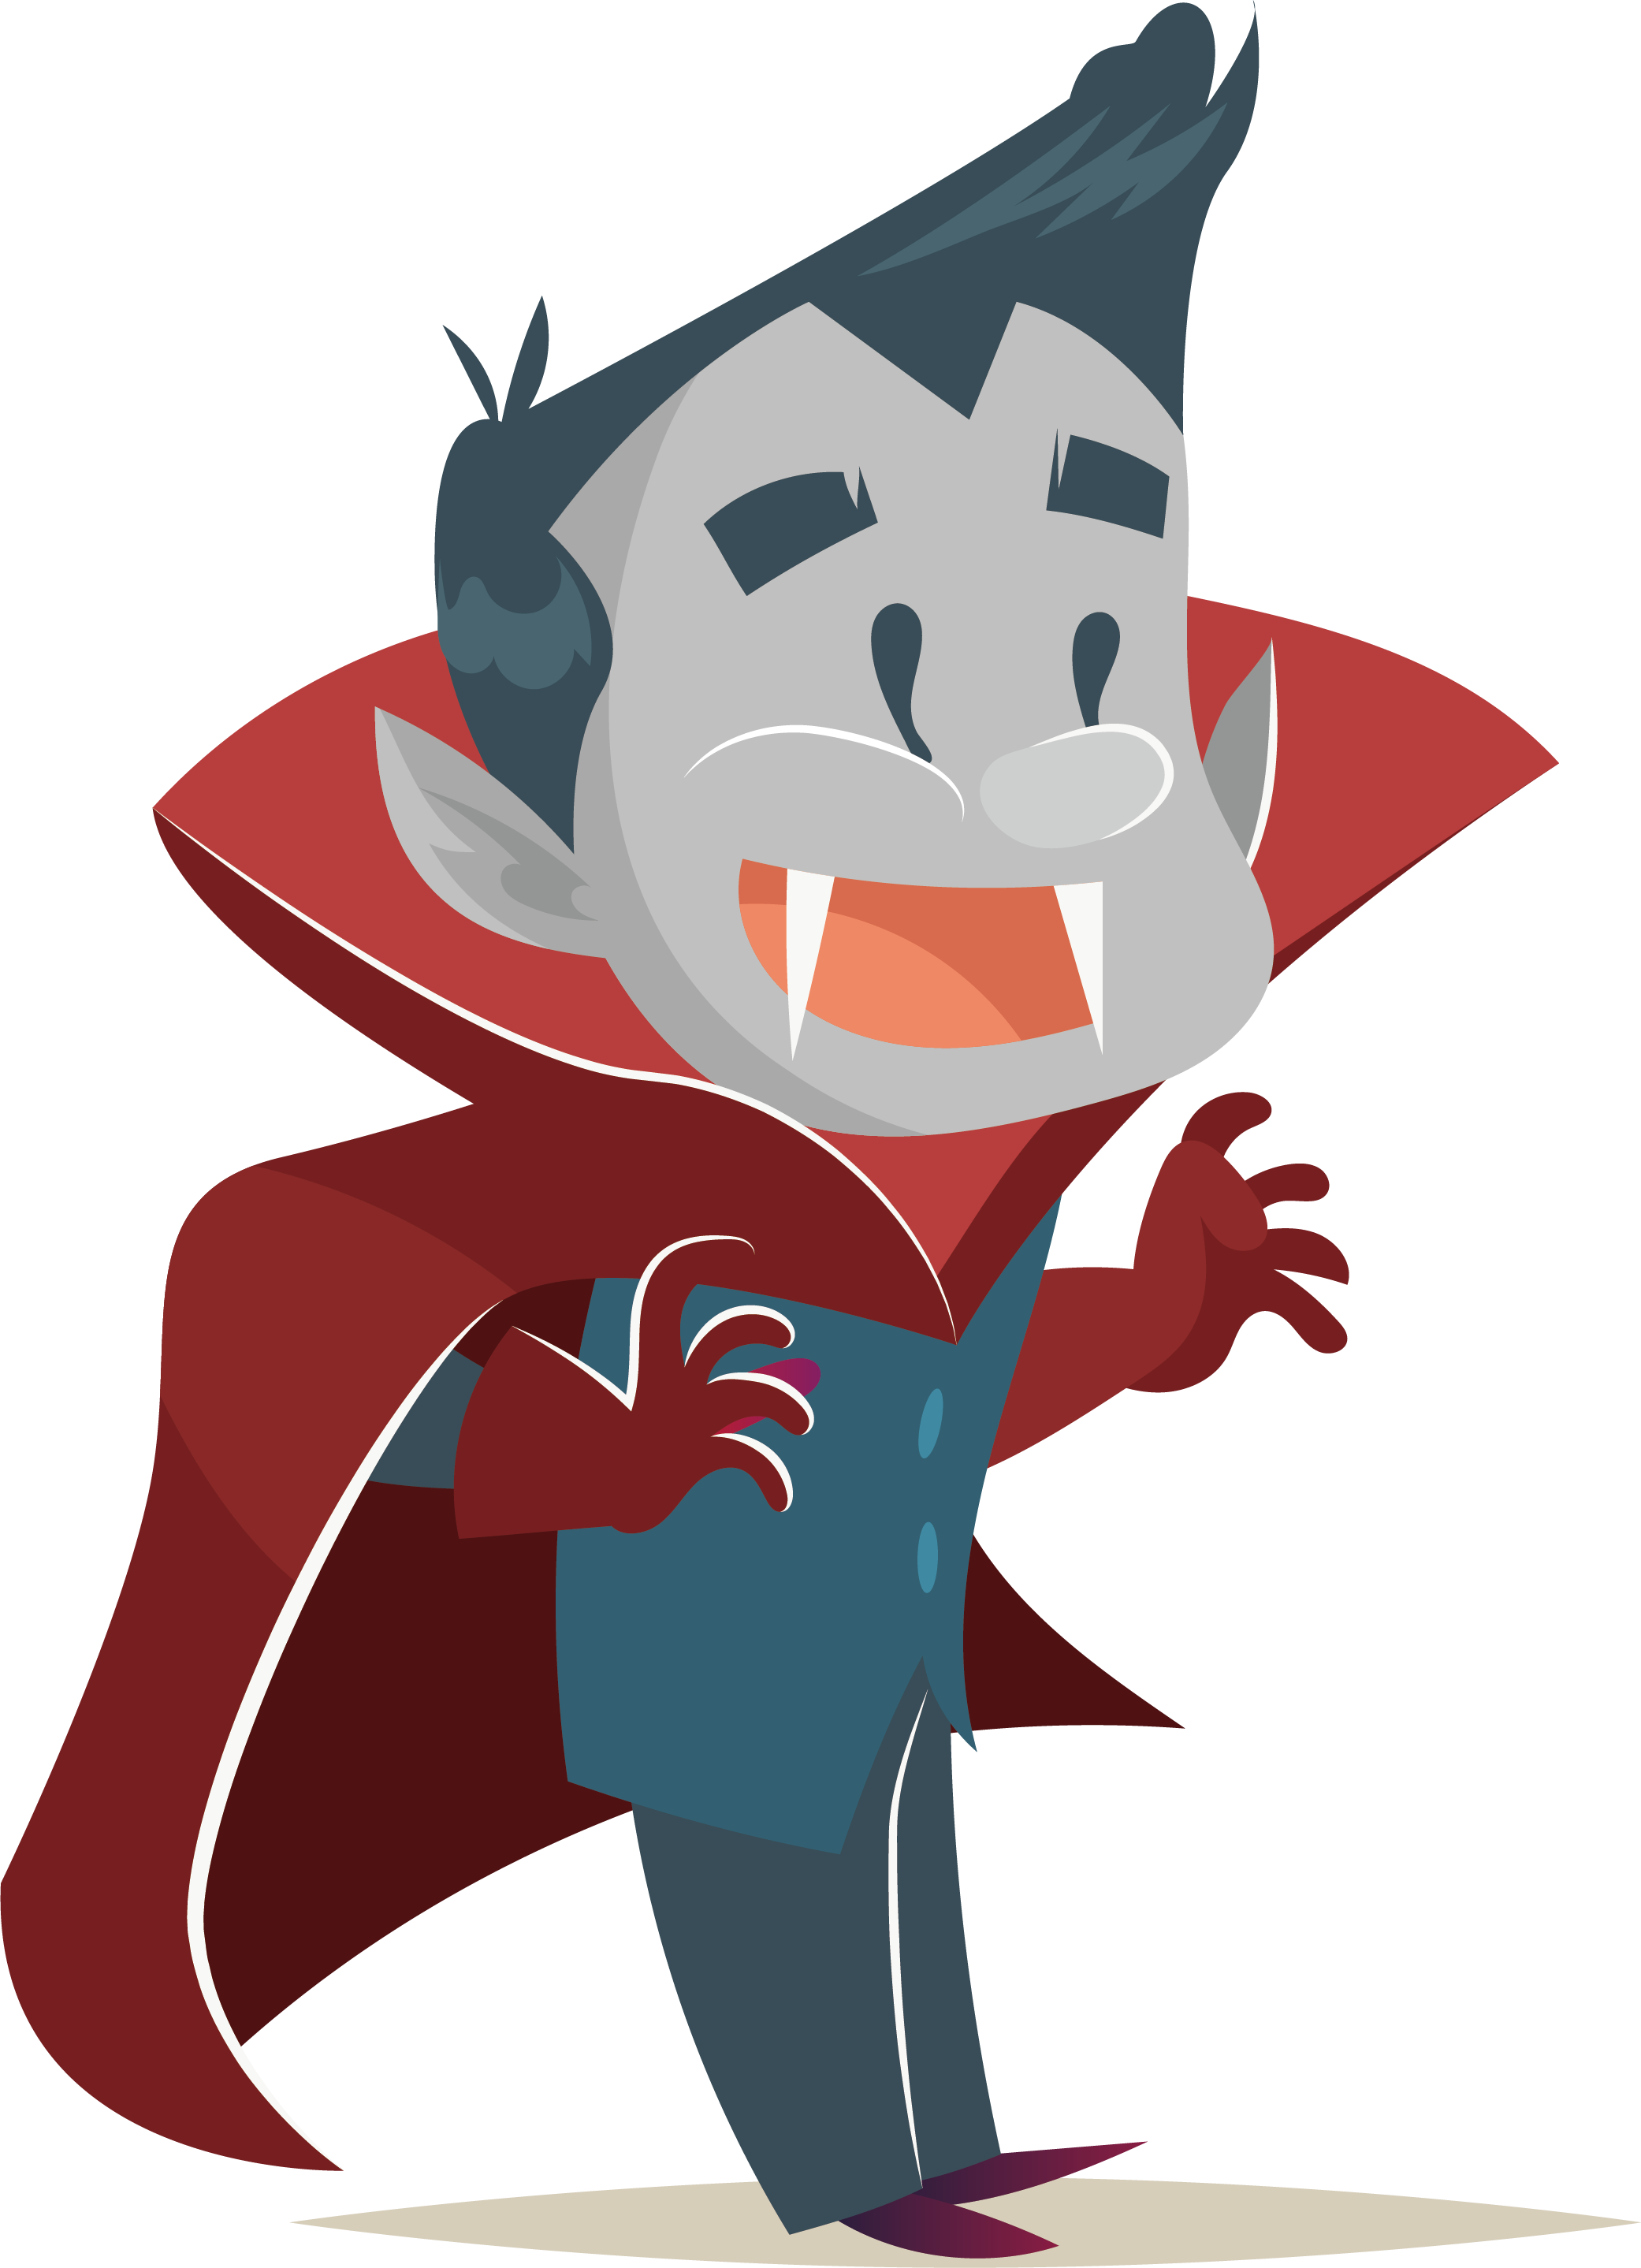 svg library Vampire transparent cartoon halloween. Animation illustration happy transprent